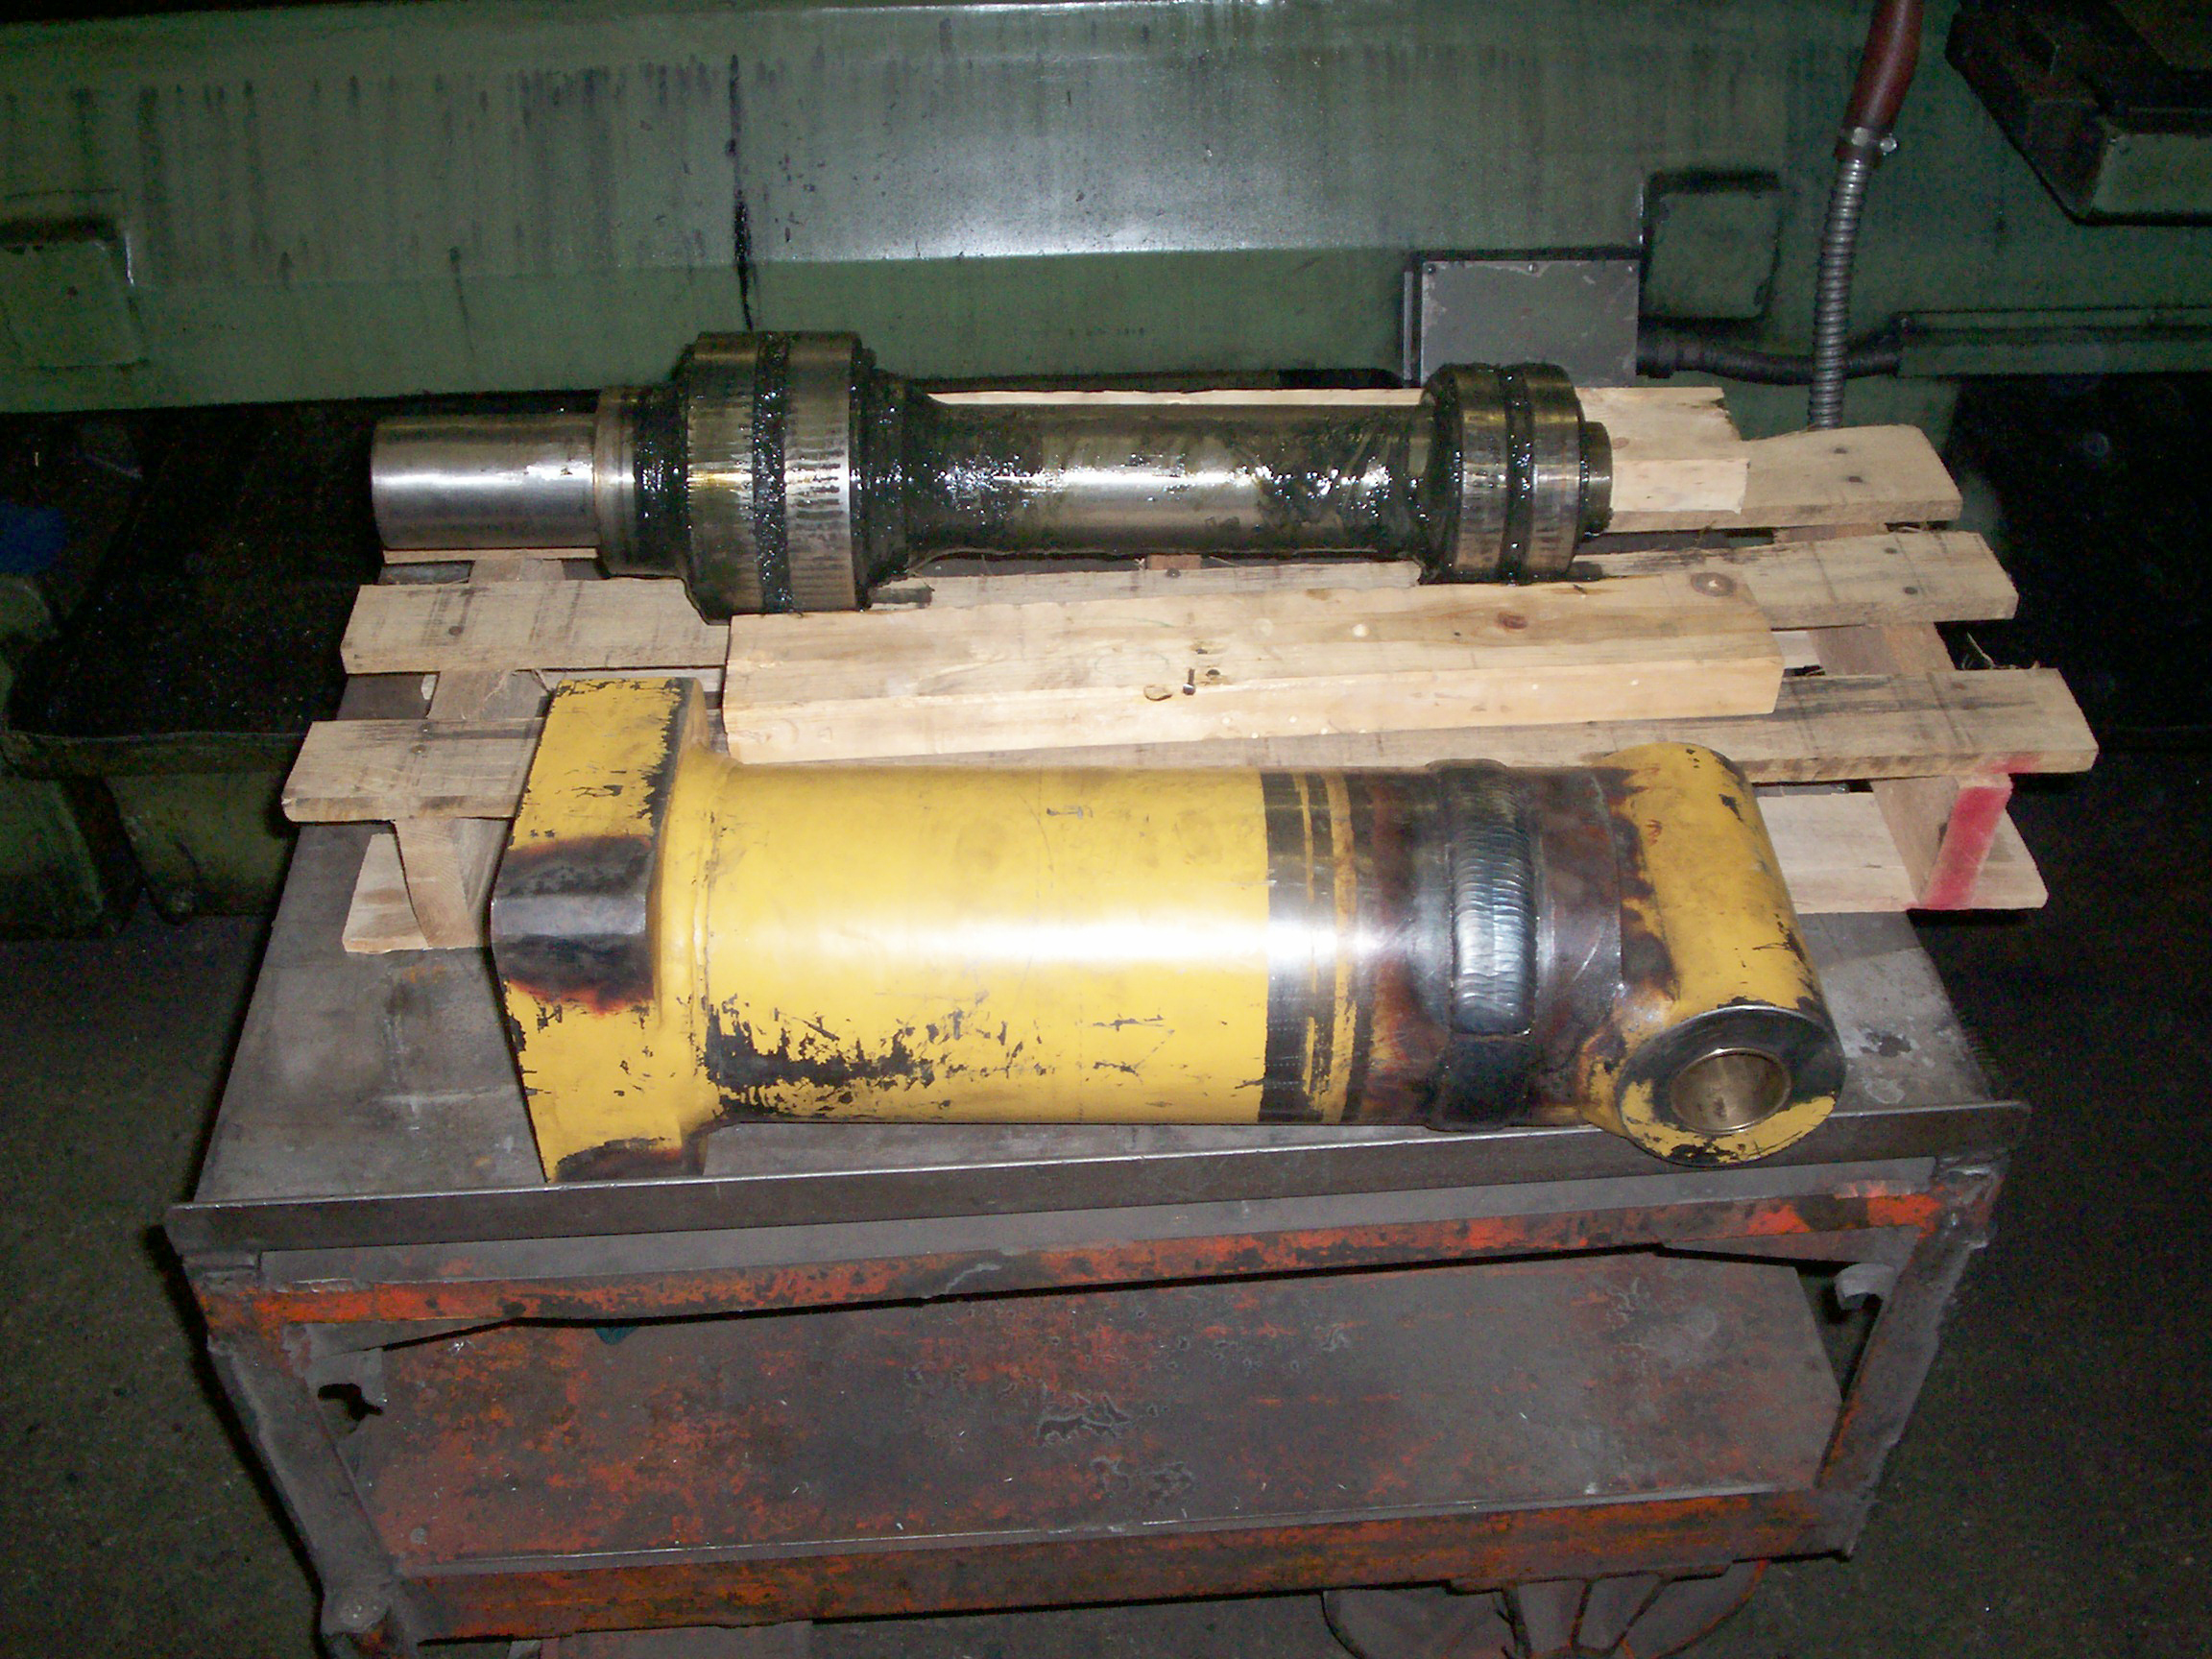 Construction machinery components - rebuilt rod and cylinder